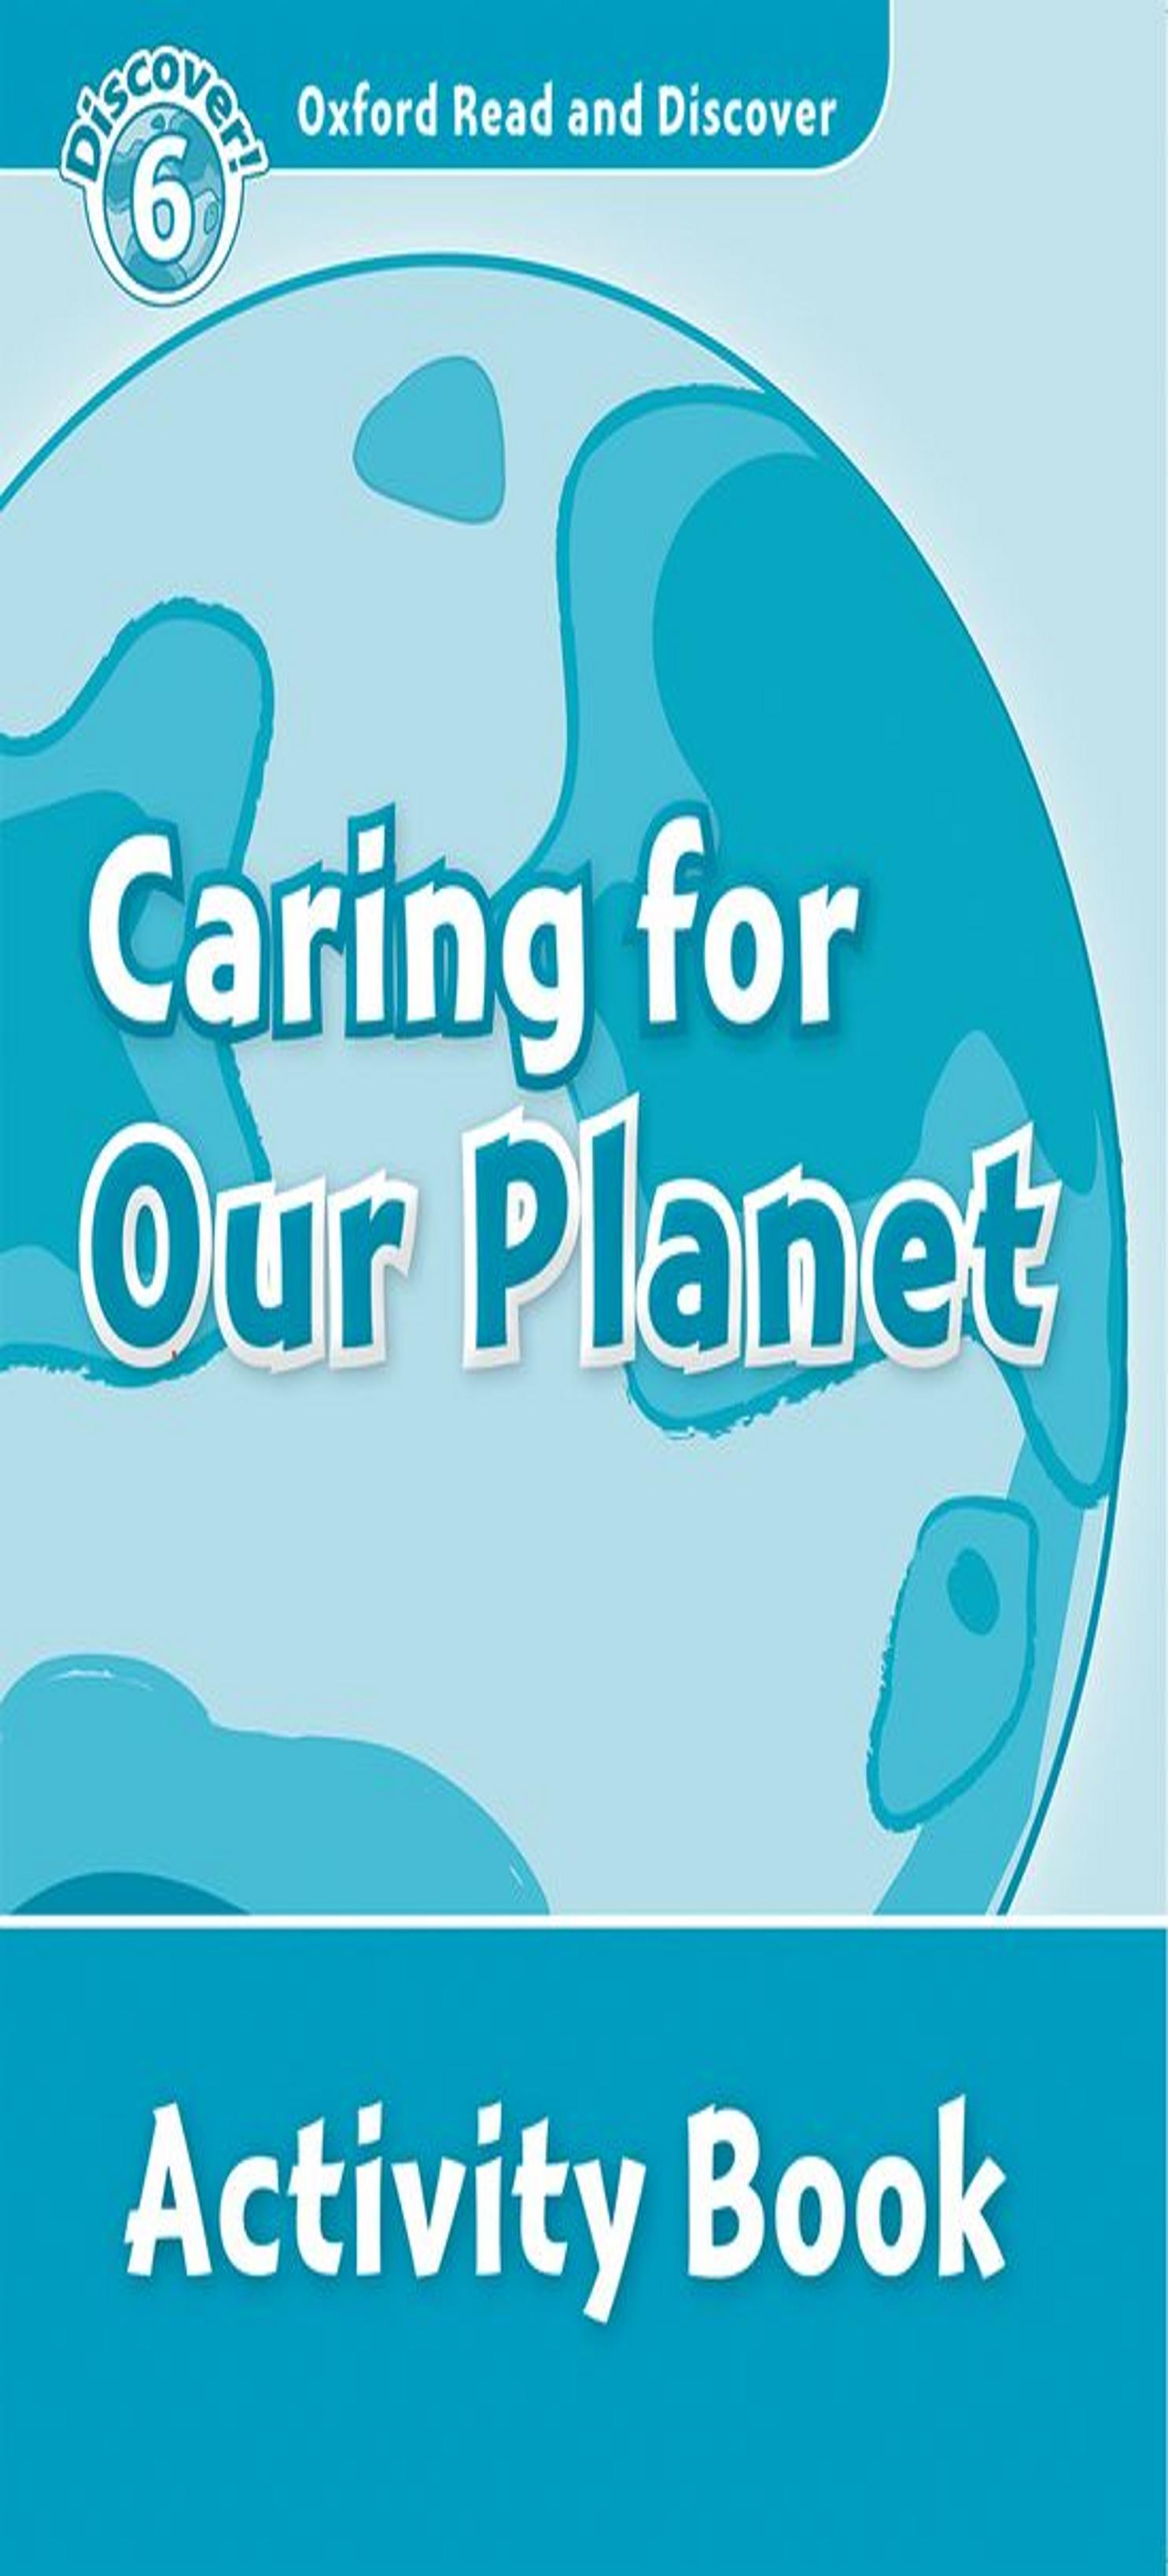 OXF RAD 6 CARING FOR OUR PLANET AB